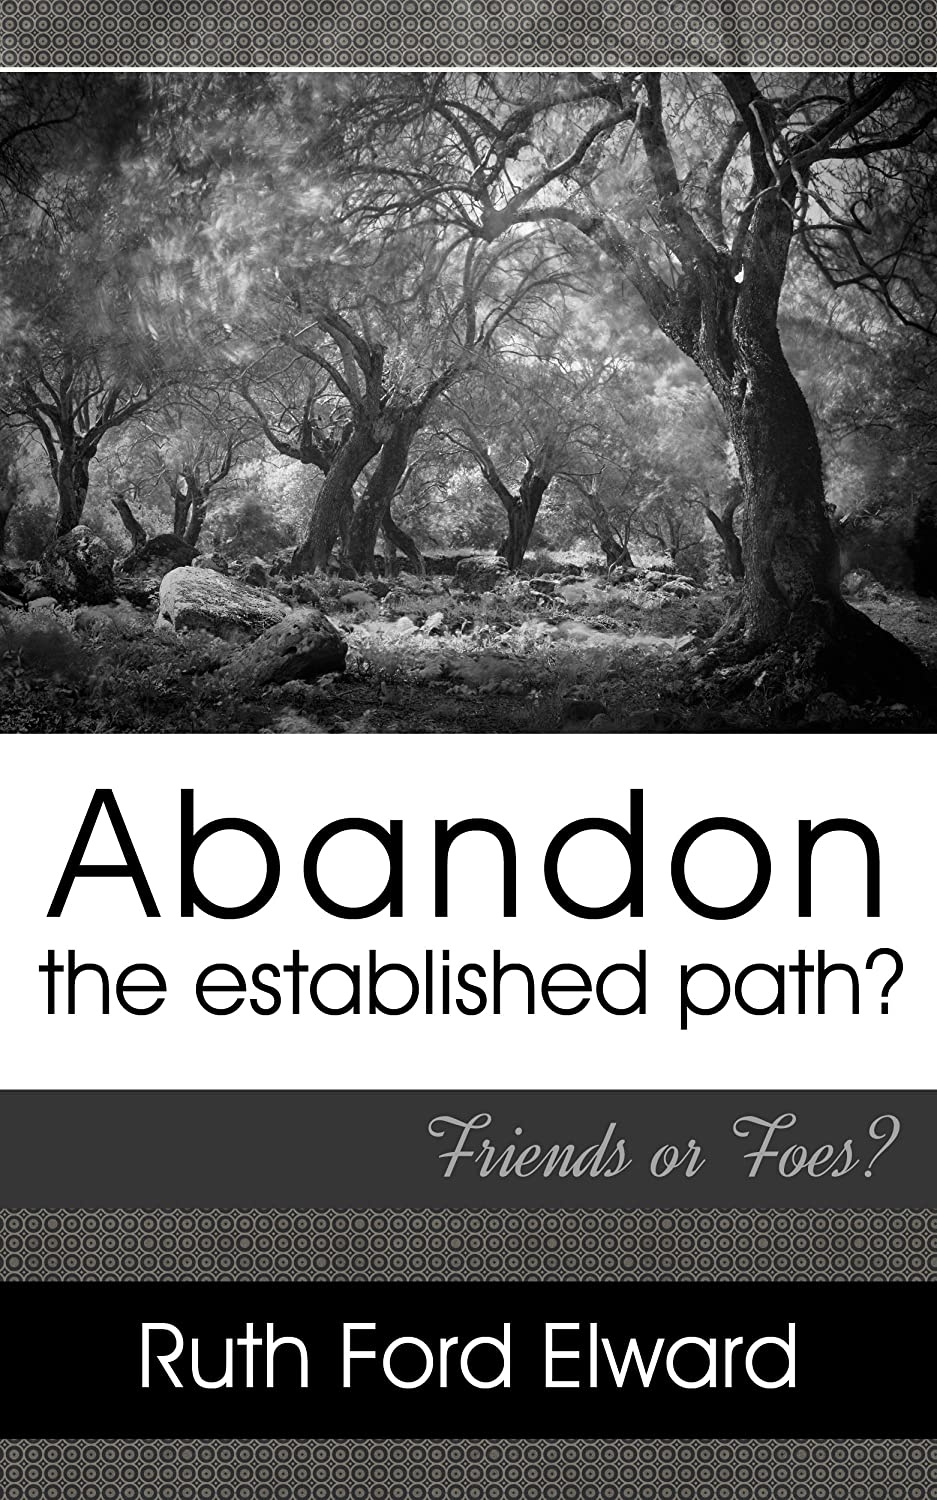 CC-3-Abandon-the-established-path-1562x2500pixels-72dpi1